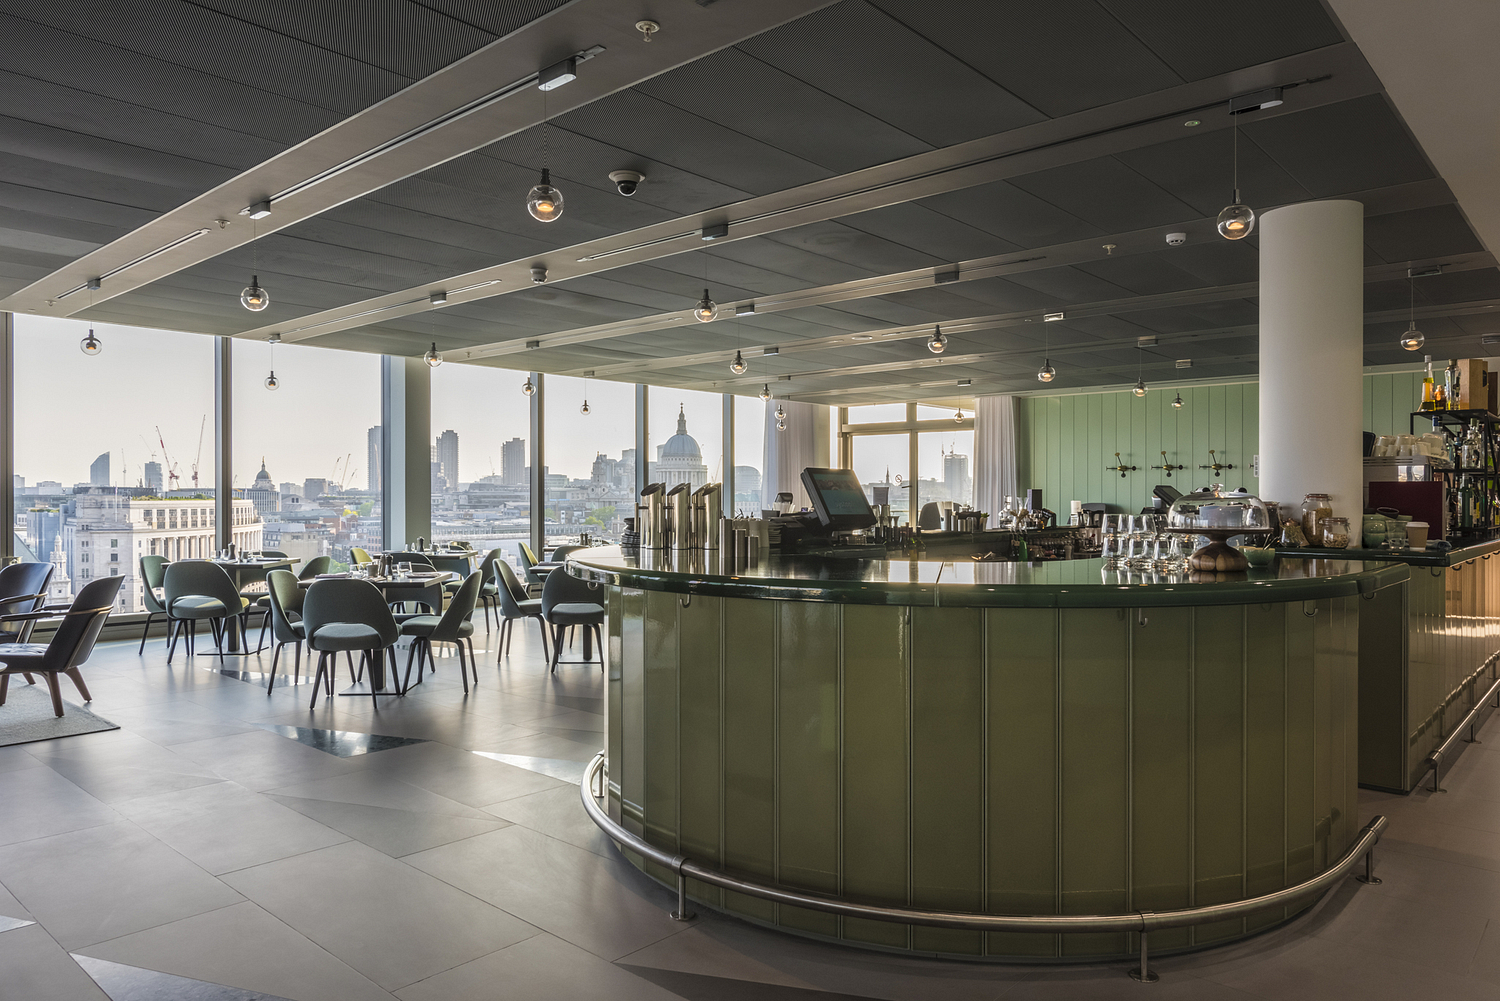 Restaurant overlooking London, Sea Containers, London